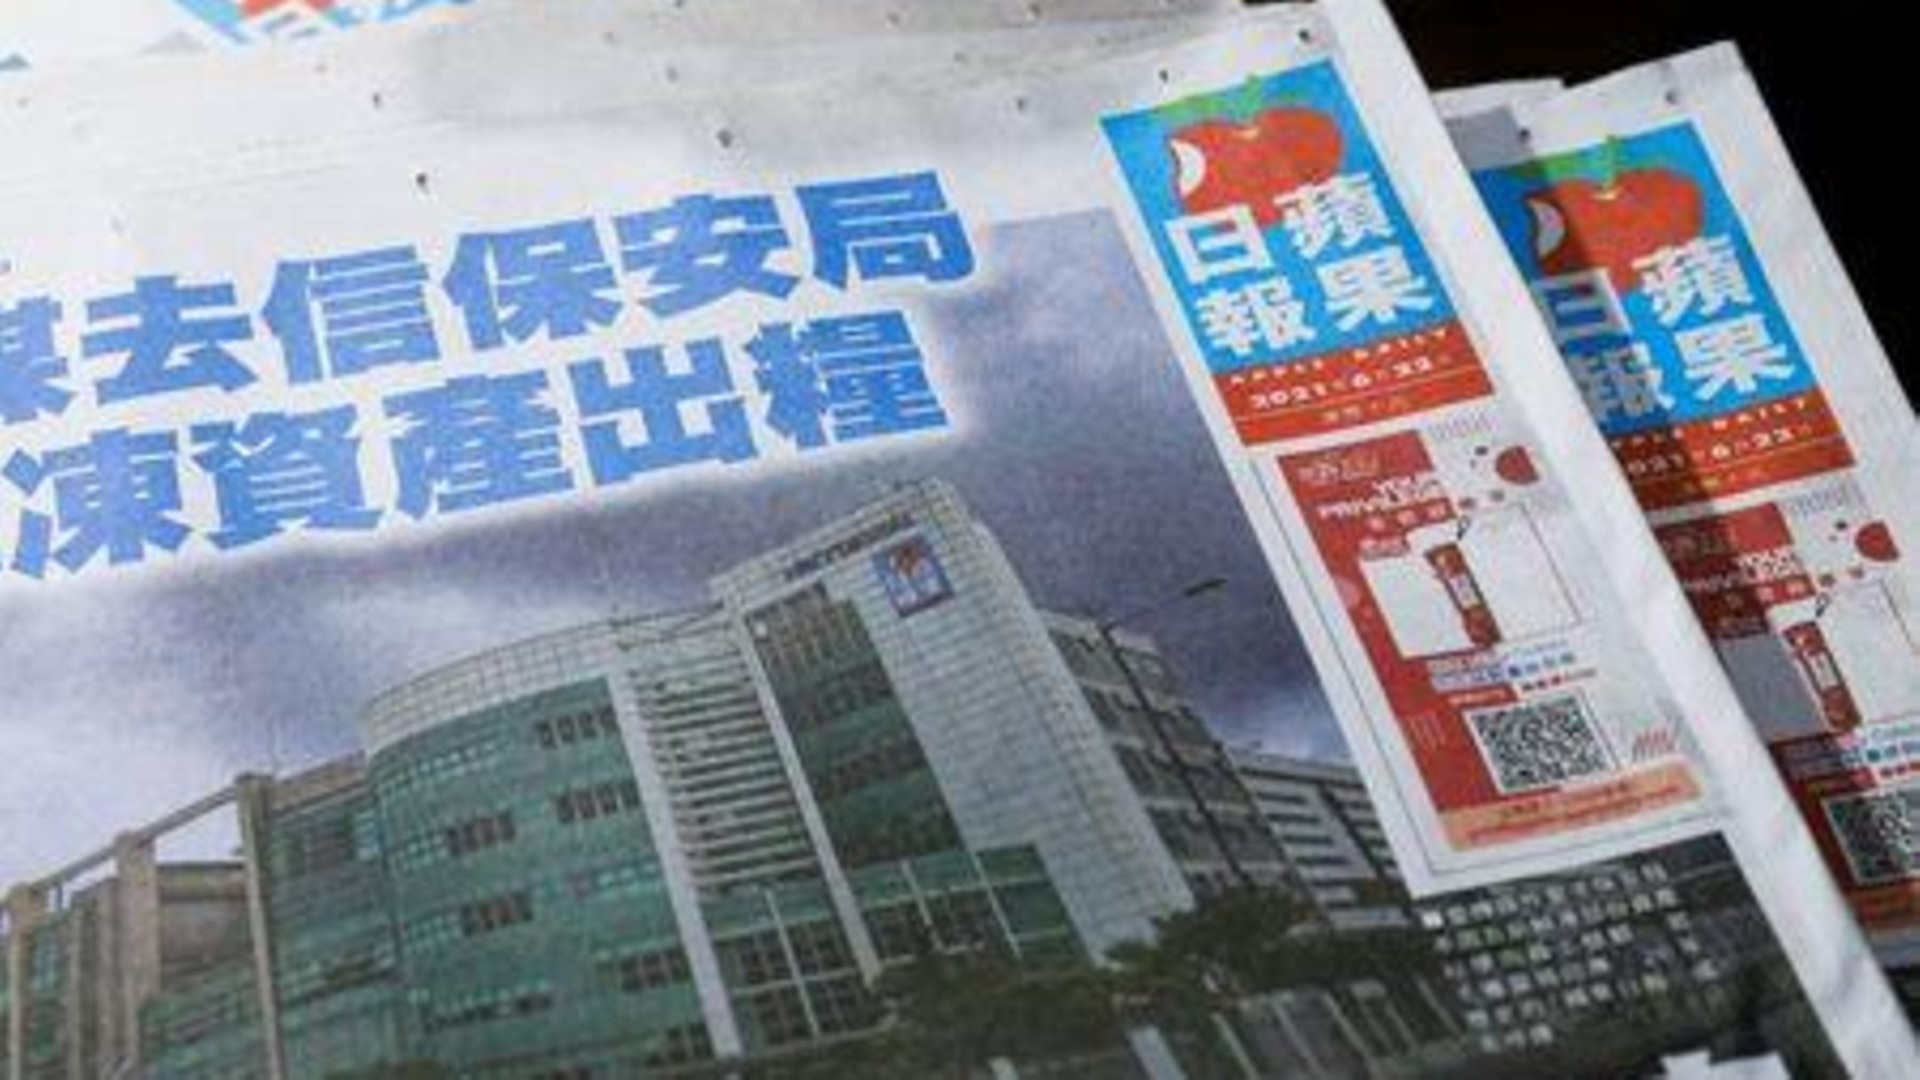 The rise and fall of HK's Apple Daily and media magnate Jimmy Lai